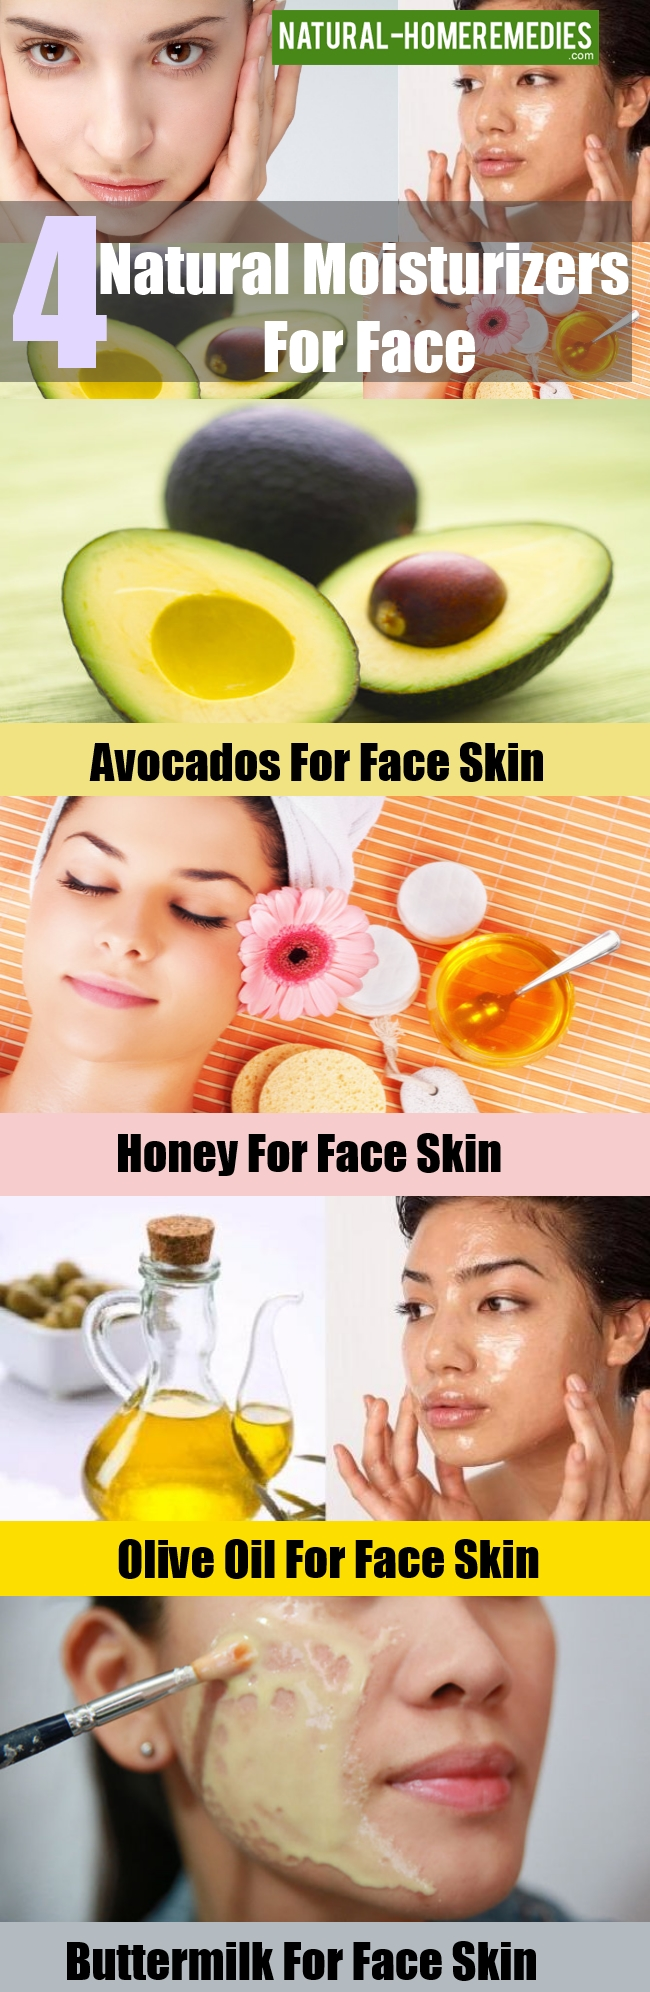 Natural Moisturizers For Face